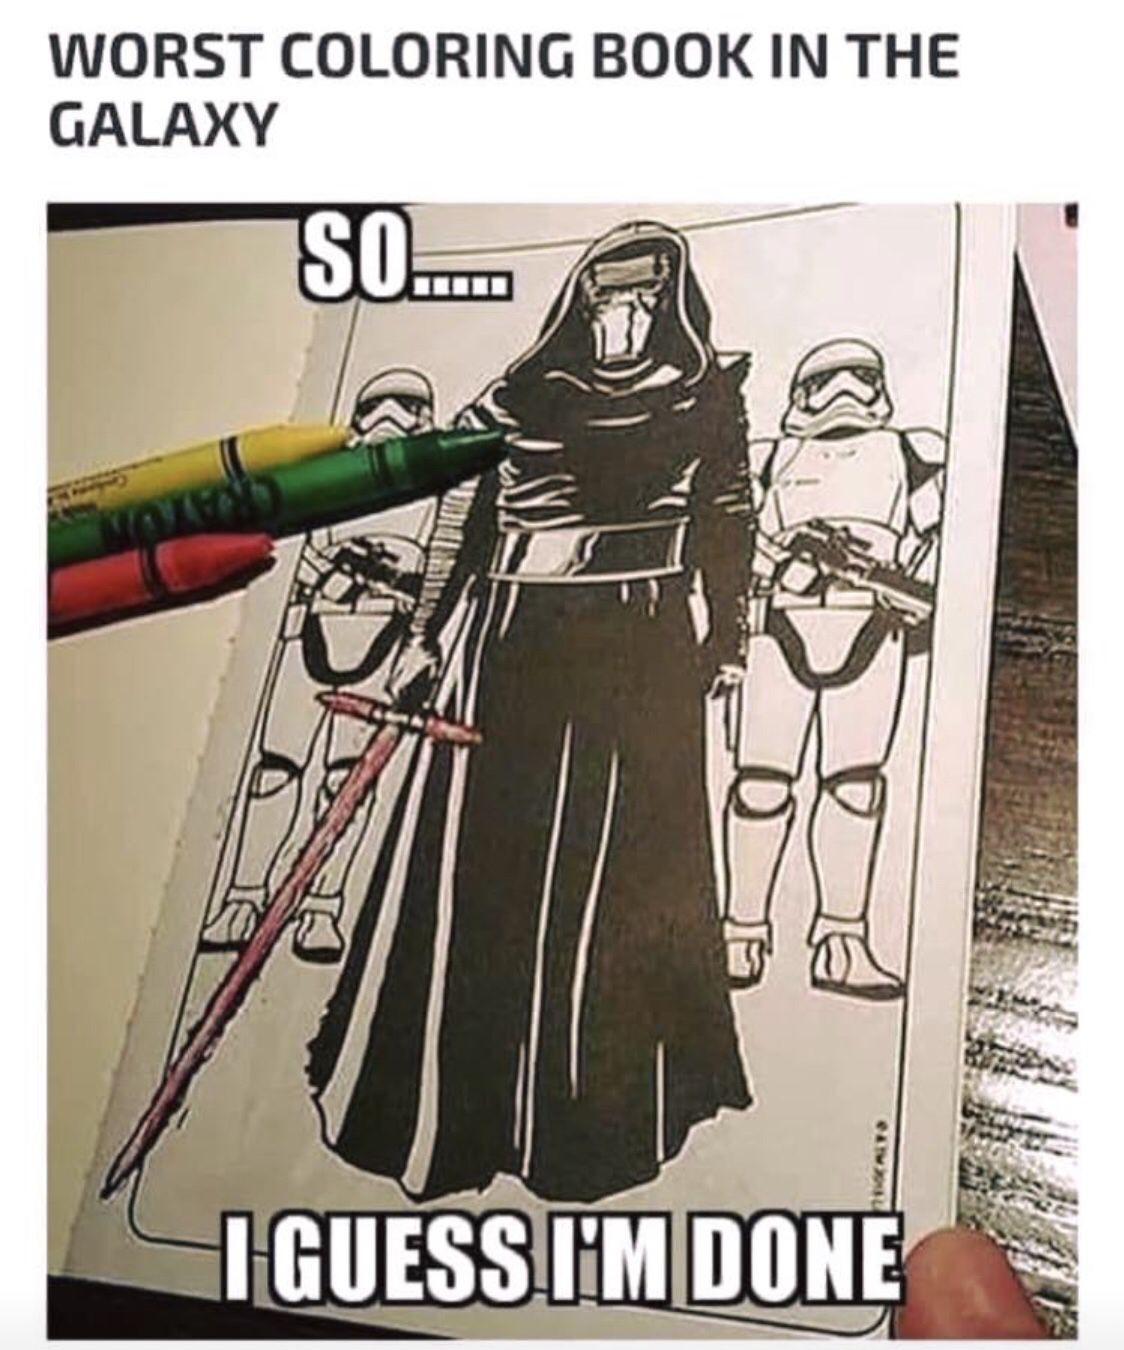 Darth Vader and StormTroopers would make the worst